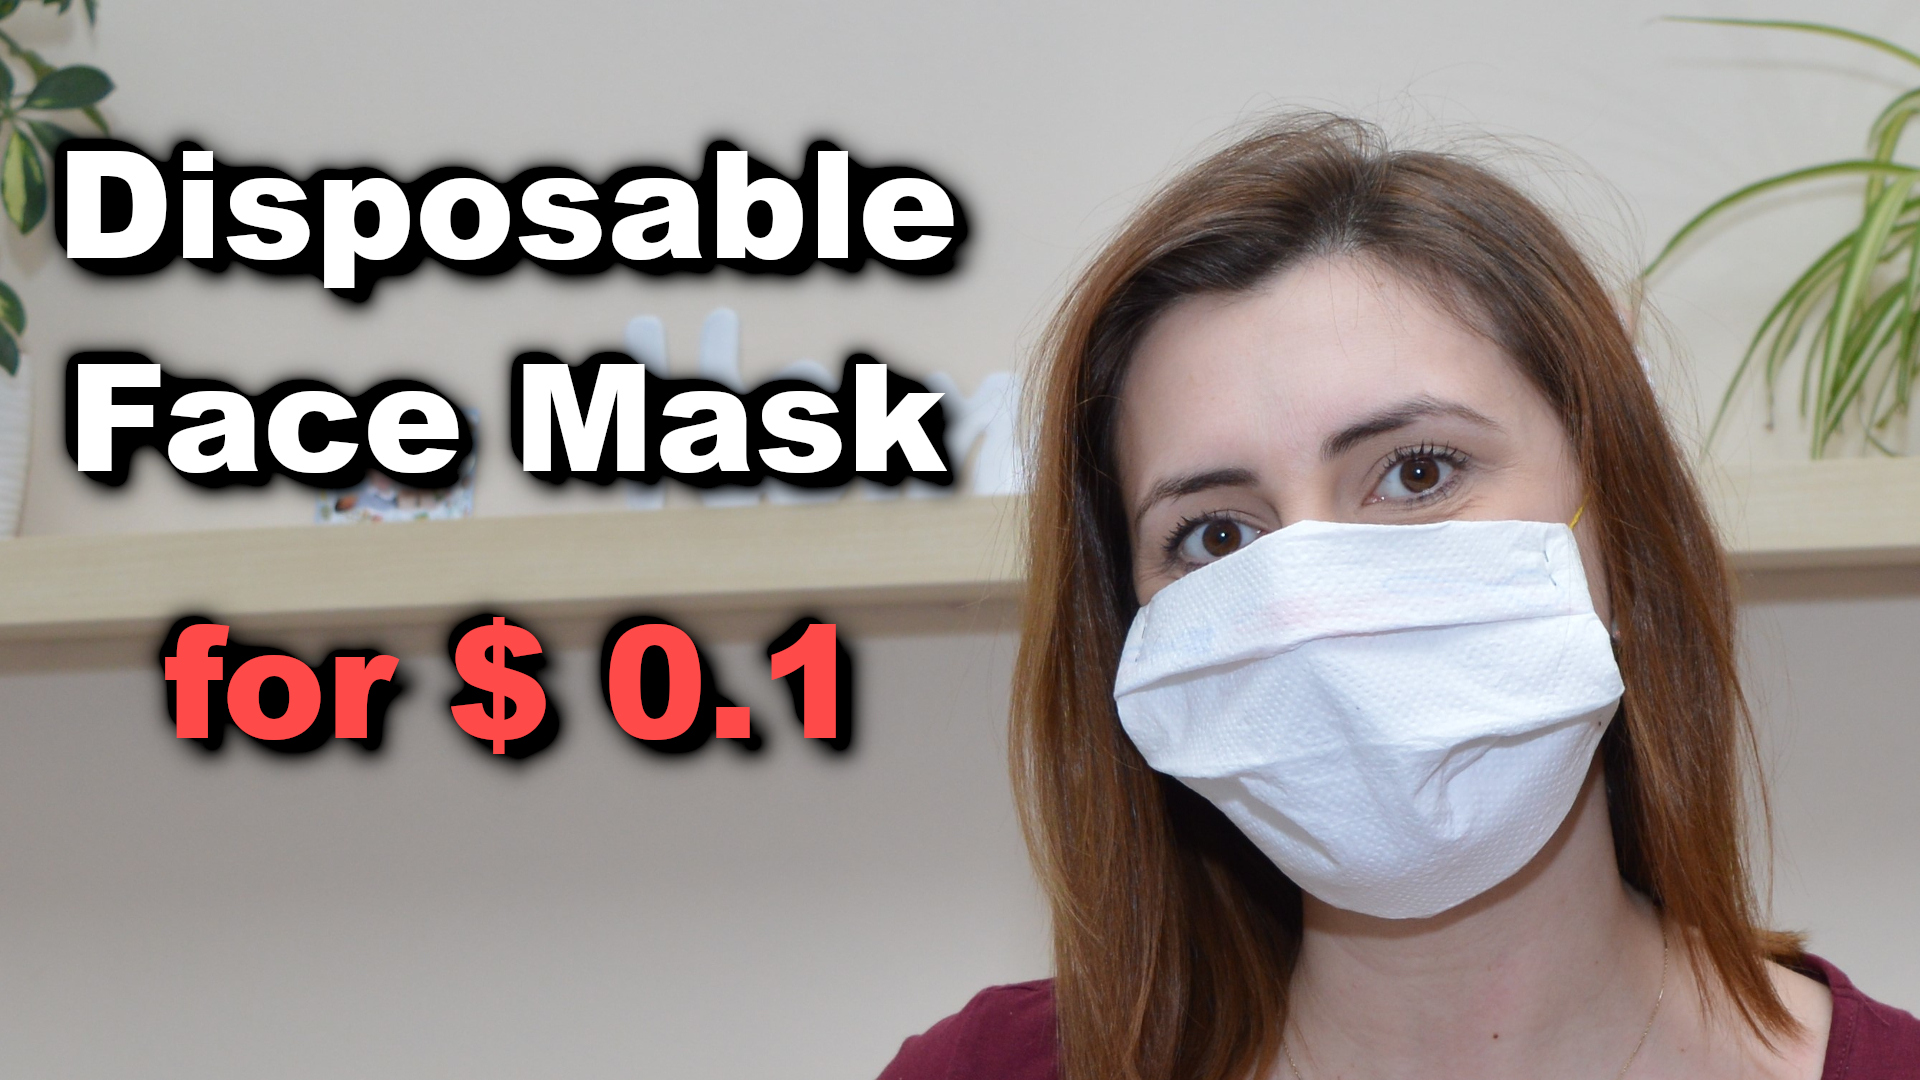 How to make a disposable face mask from a paper towel for only $ 0.1